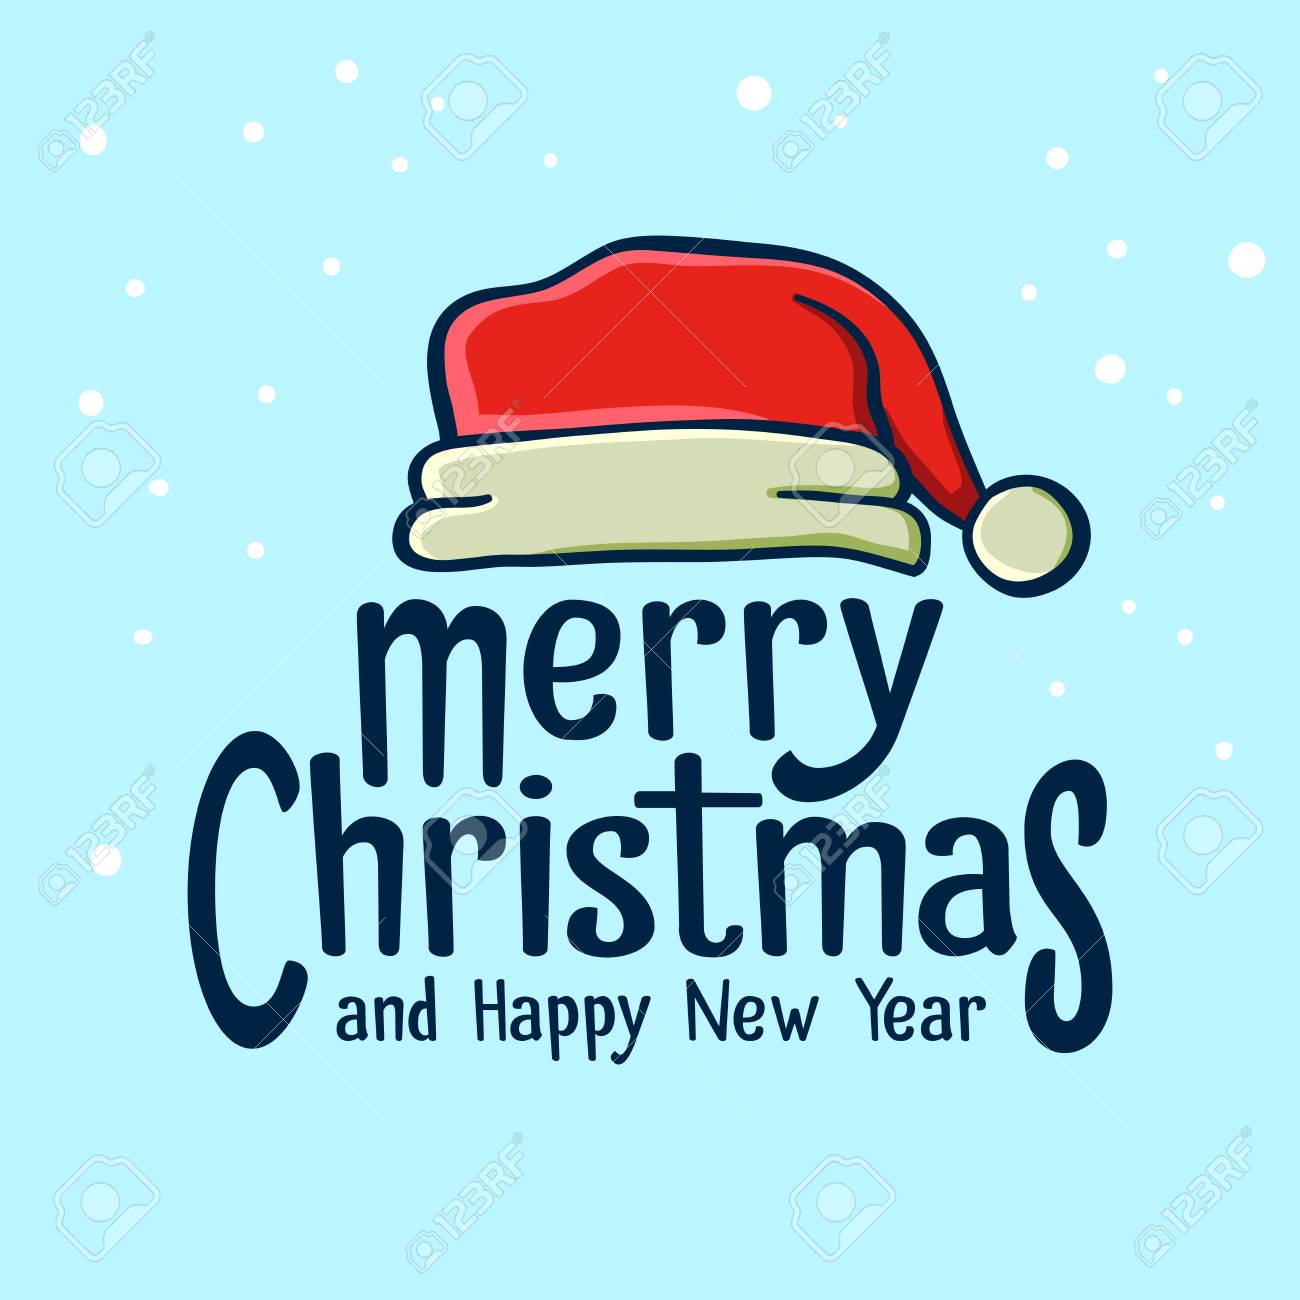 Merry Christmas And Happy New Year Greetings With Santa Claus